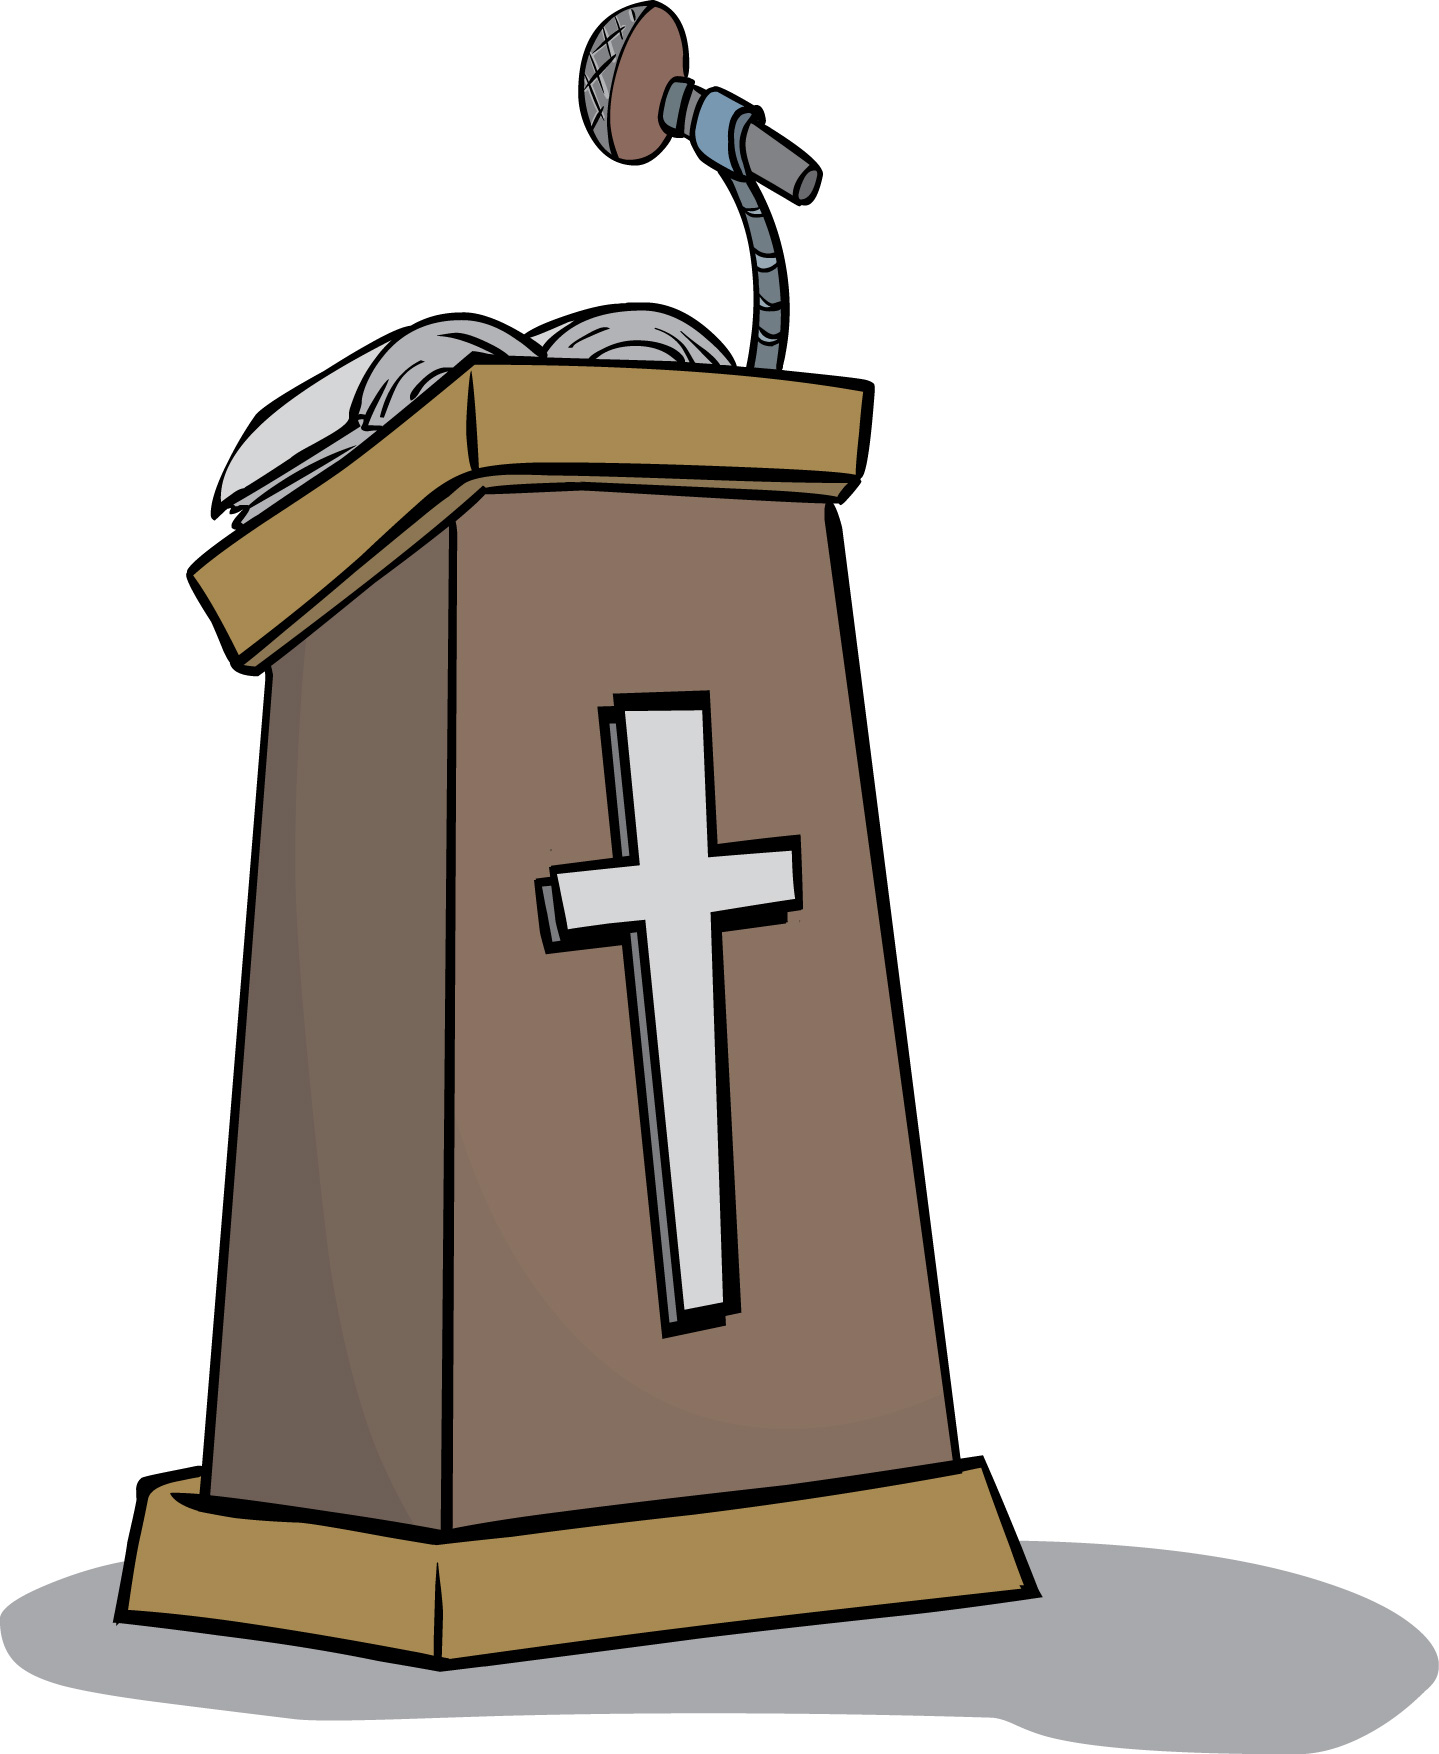 Pulpit clipart picture royalty free stock Free Church Pulpit Cliparts, Download Free Clip Art, Free ... picture royalty free stock